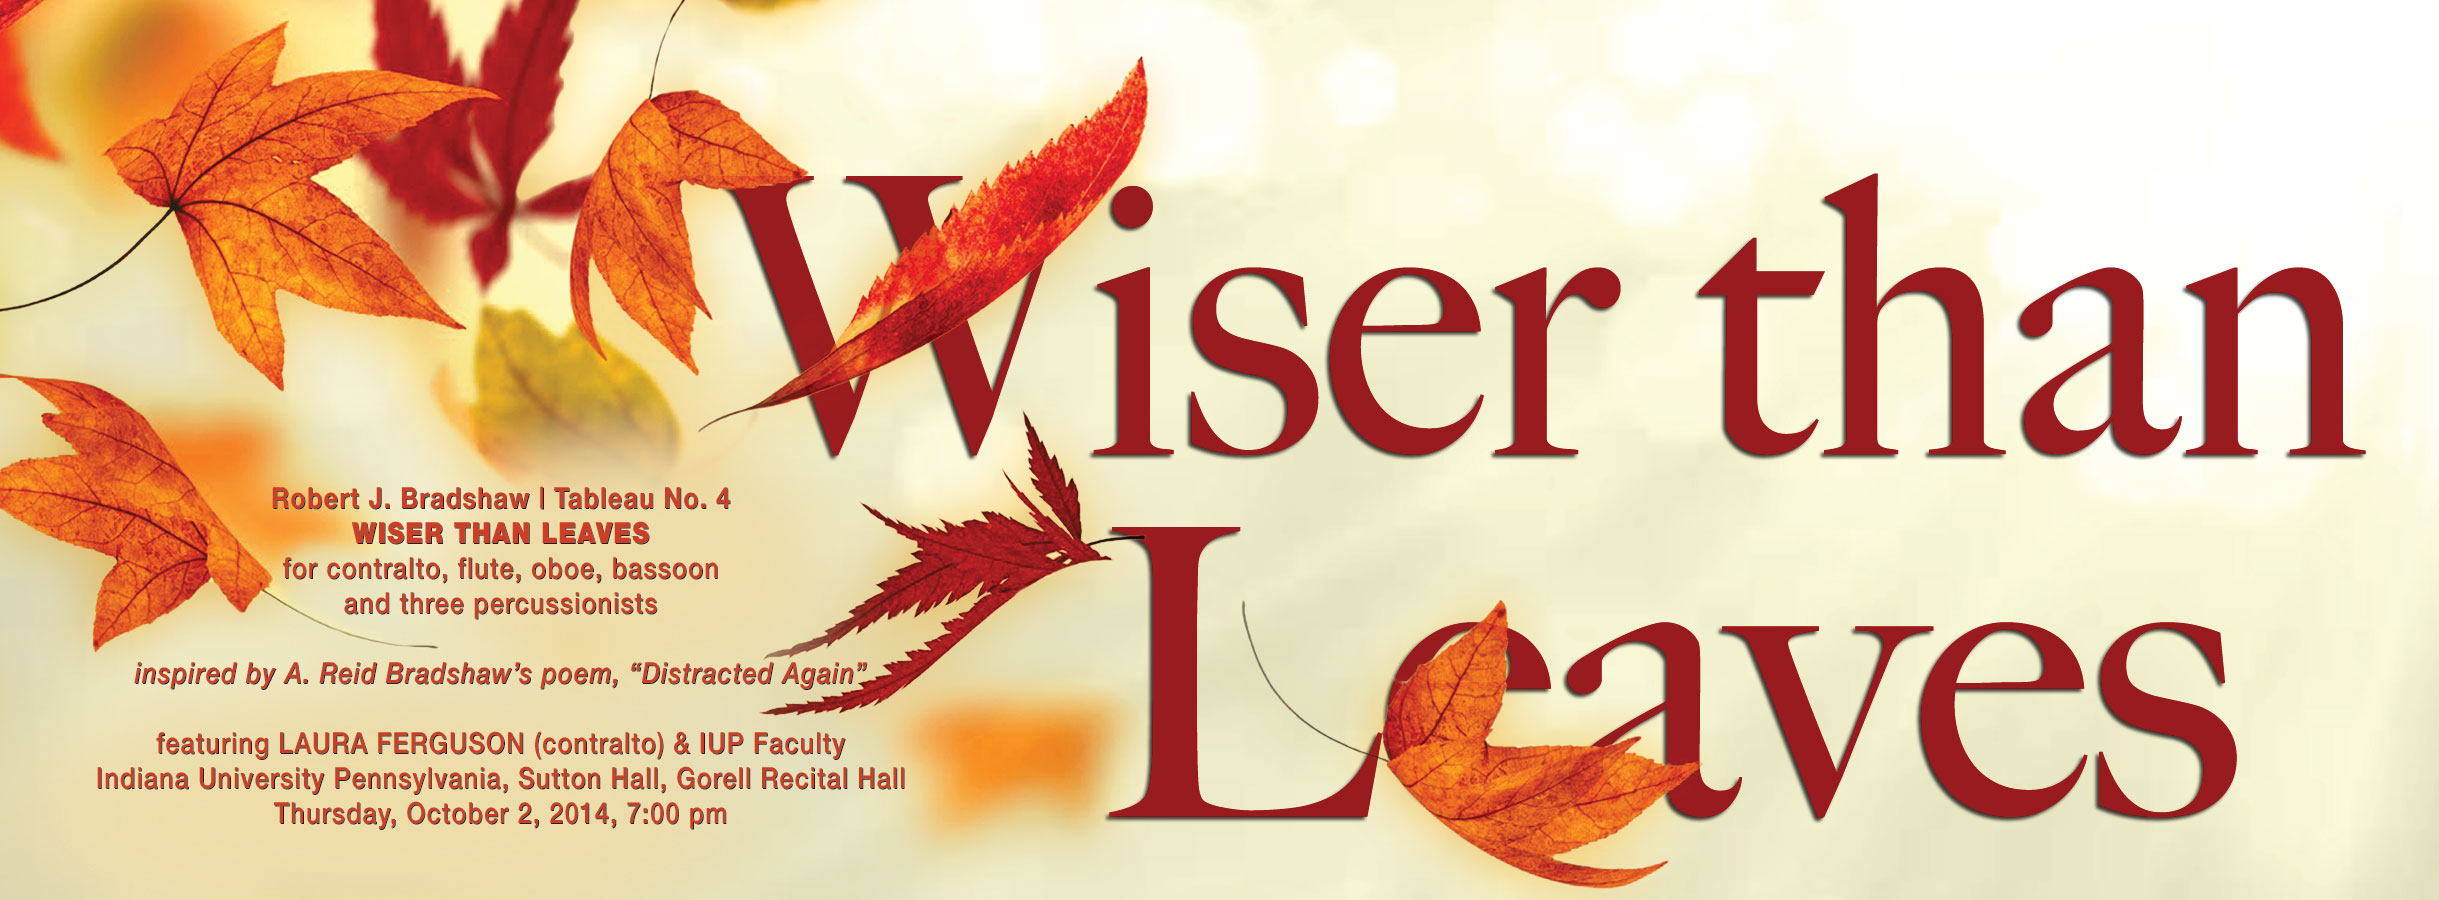 Wiser Than Leaves